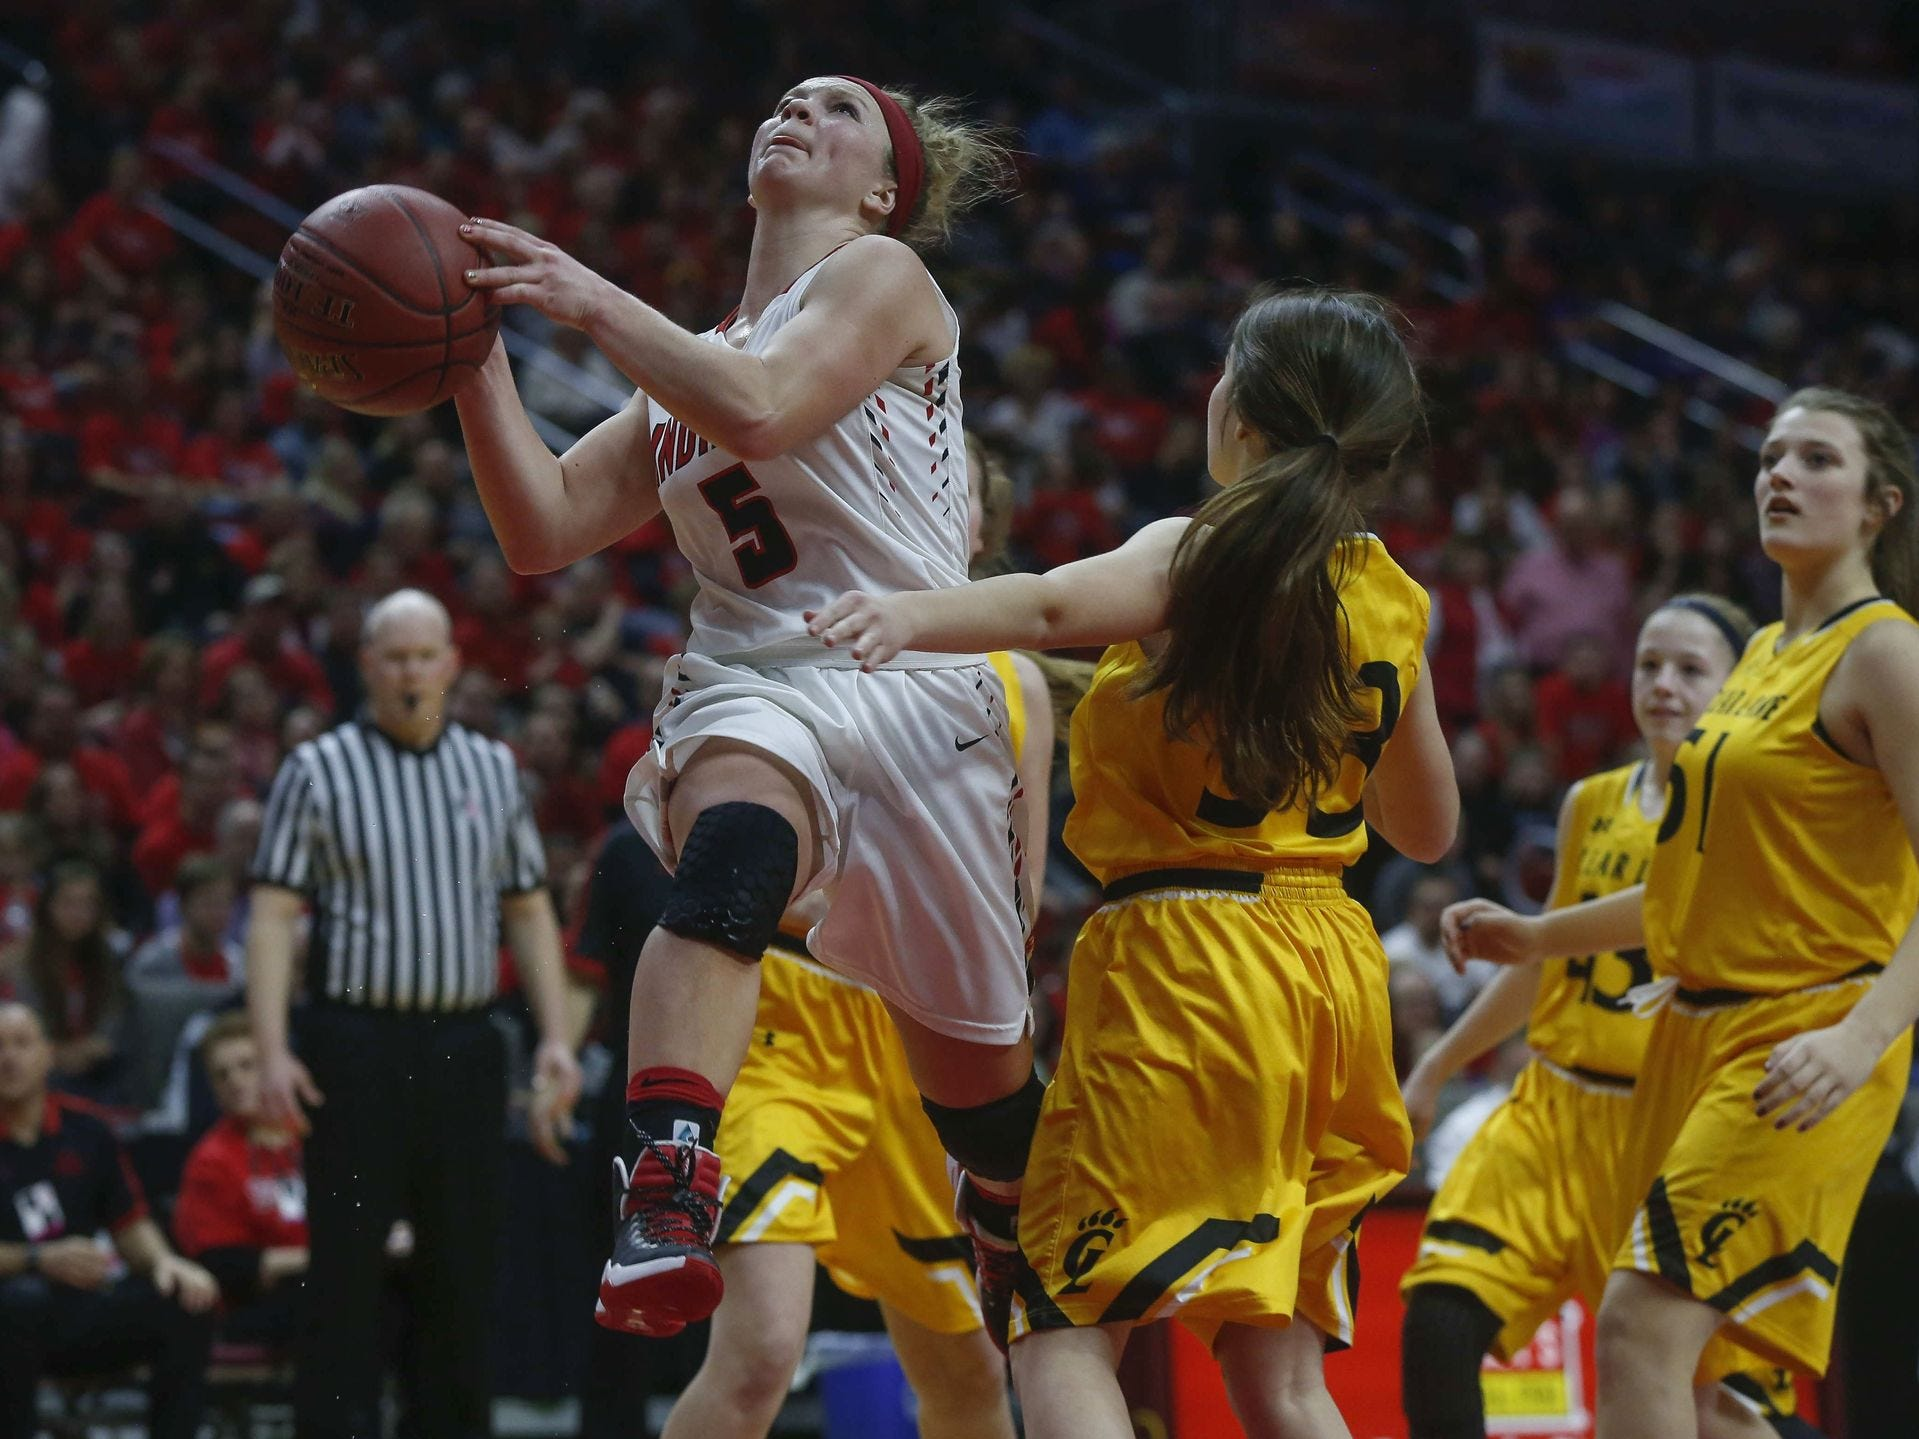 Pocahontas Area senior Elle Ruffridge moves through traffic against Clear Lake on Tuesday, Feb. 28, 2017, at Wells Fargo Arena in Des Moines. Bryon Houlgrave/Register file photo